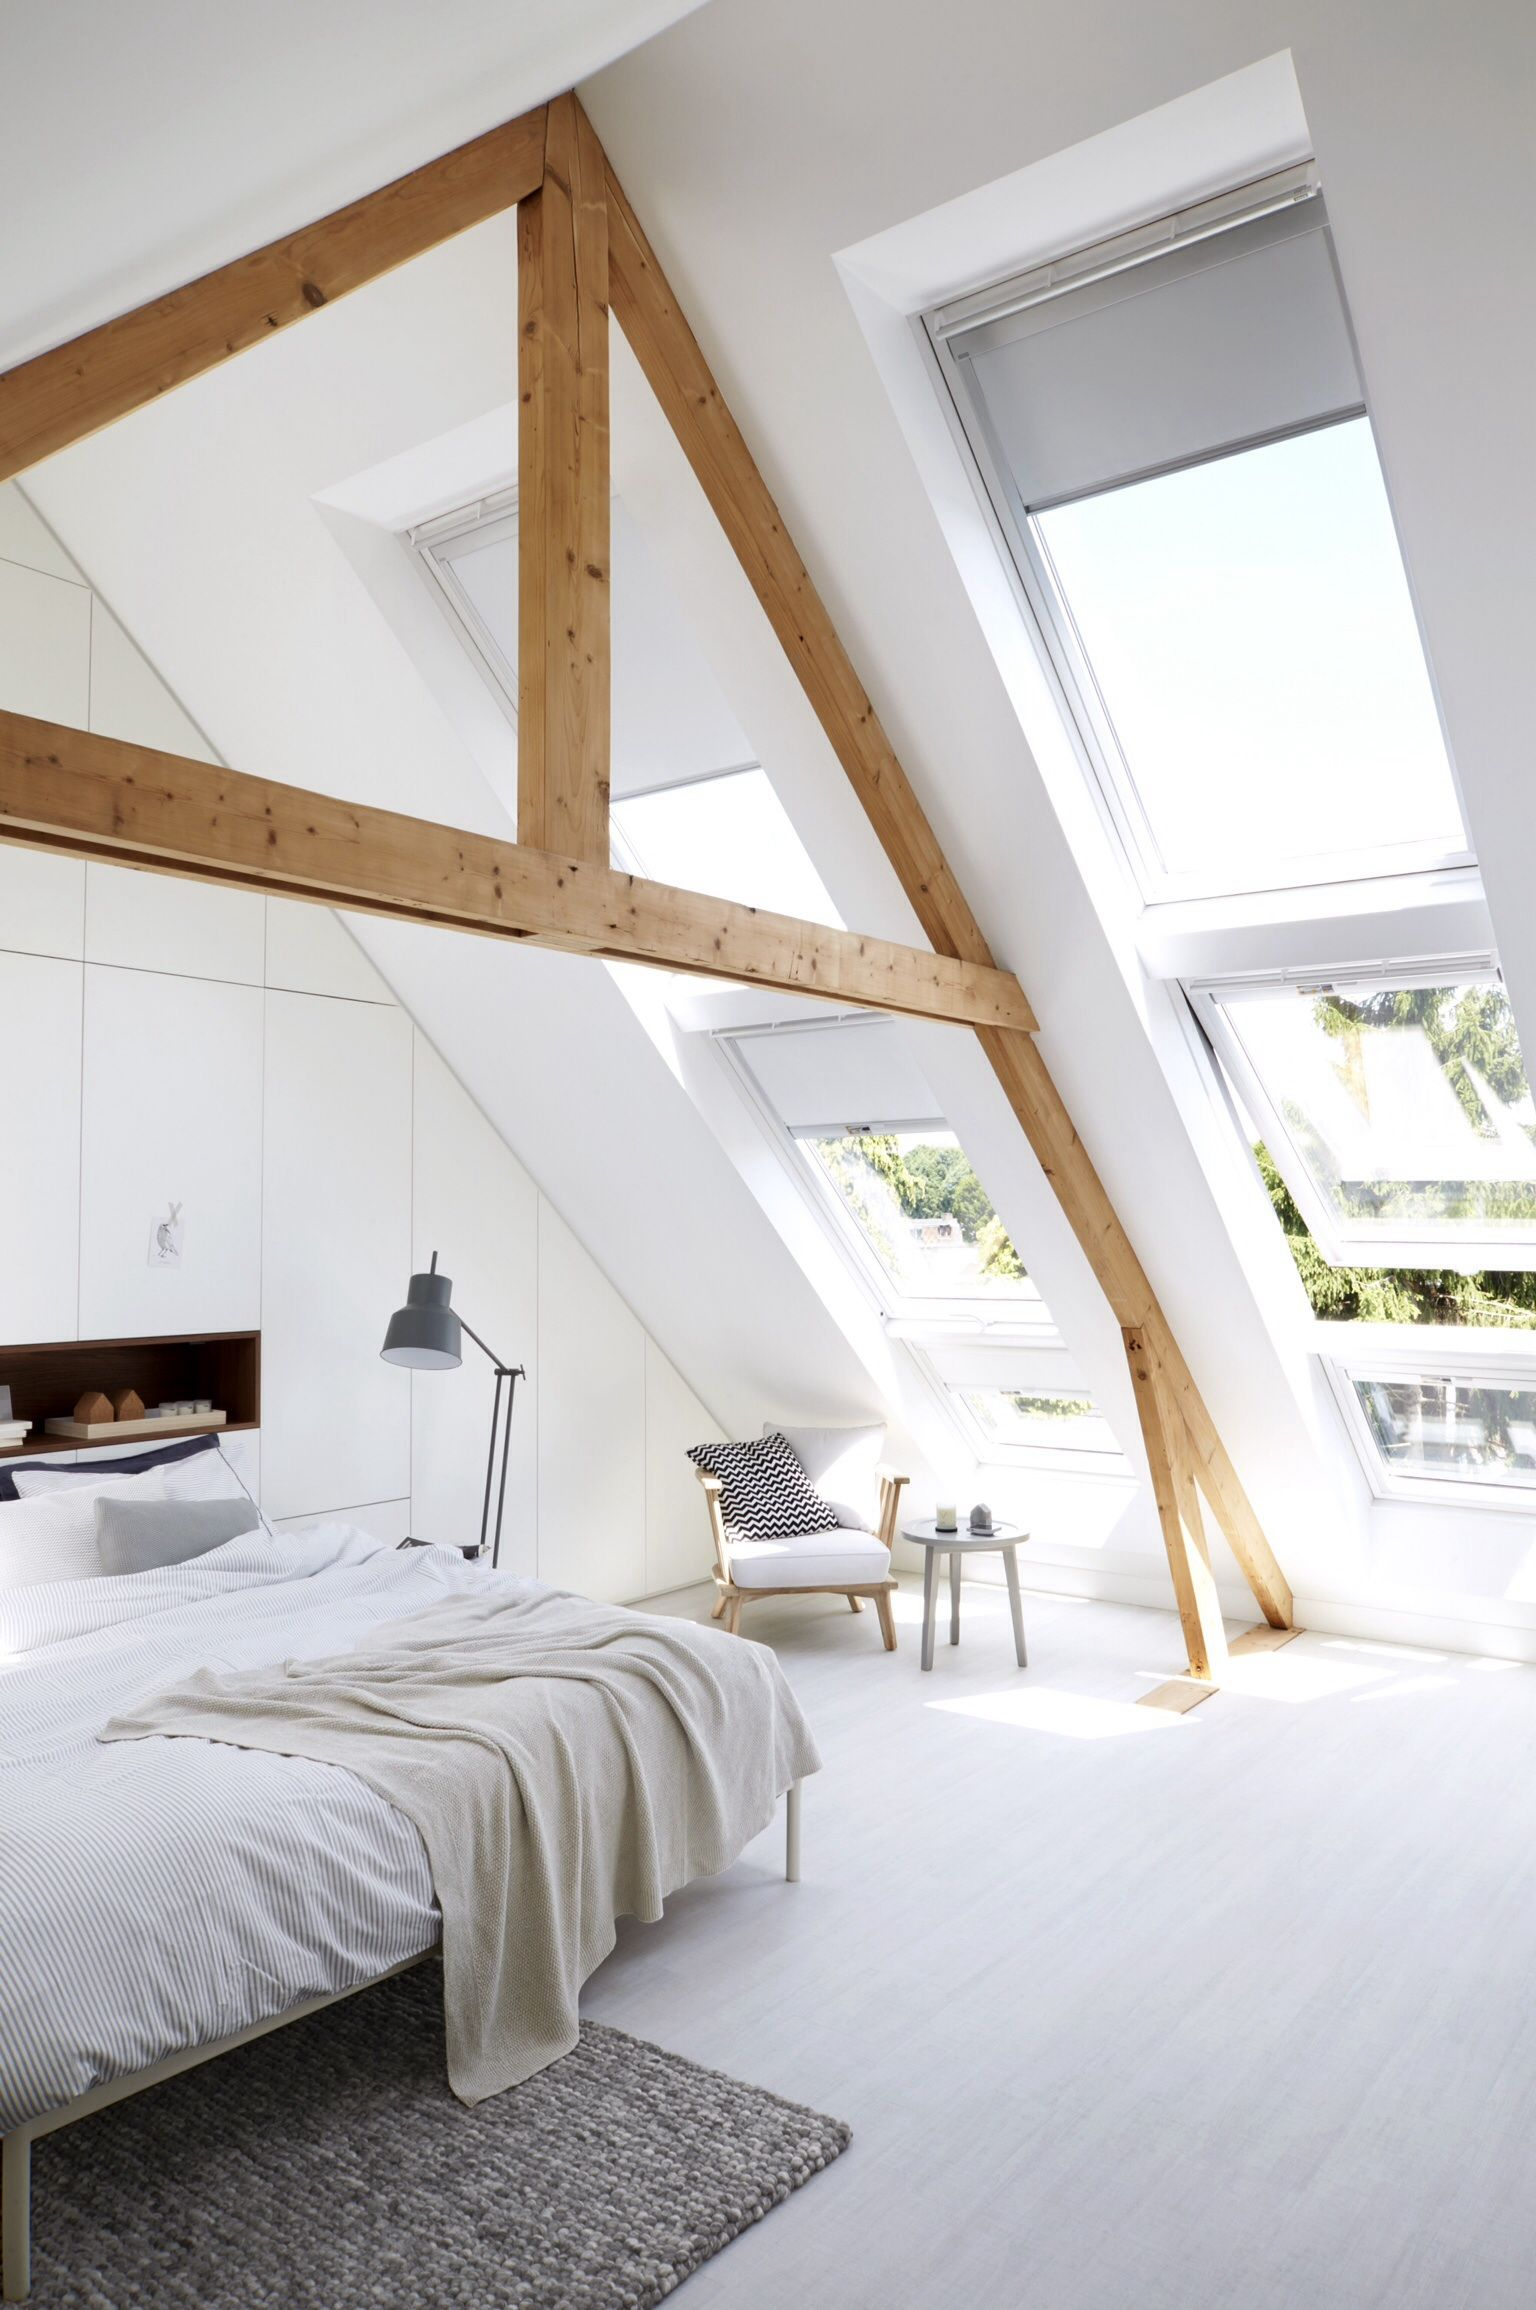 Loft bedroom images  A Gallery of Gorgeous Attic Bedrooms  Bedrooms Interiors and Attic